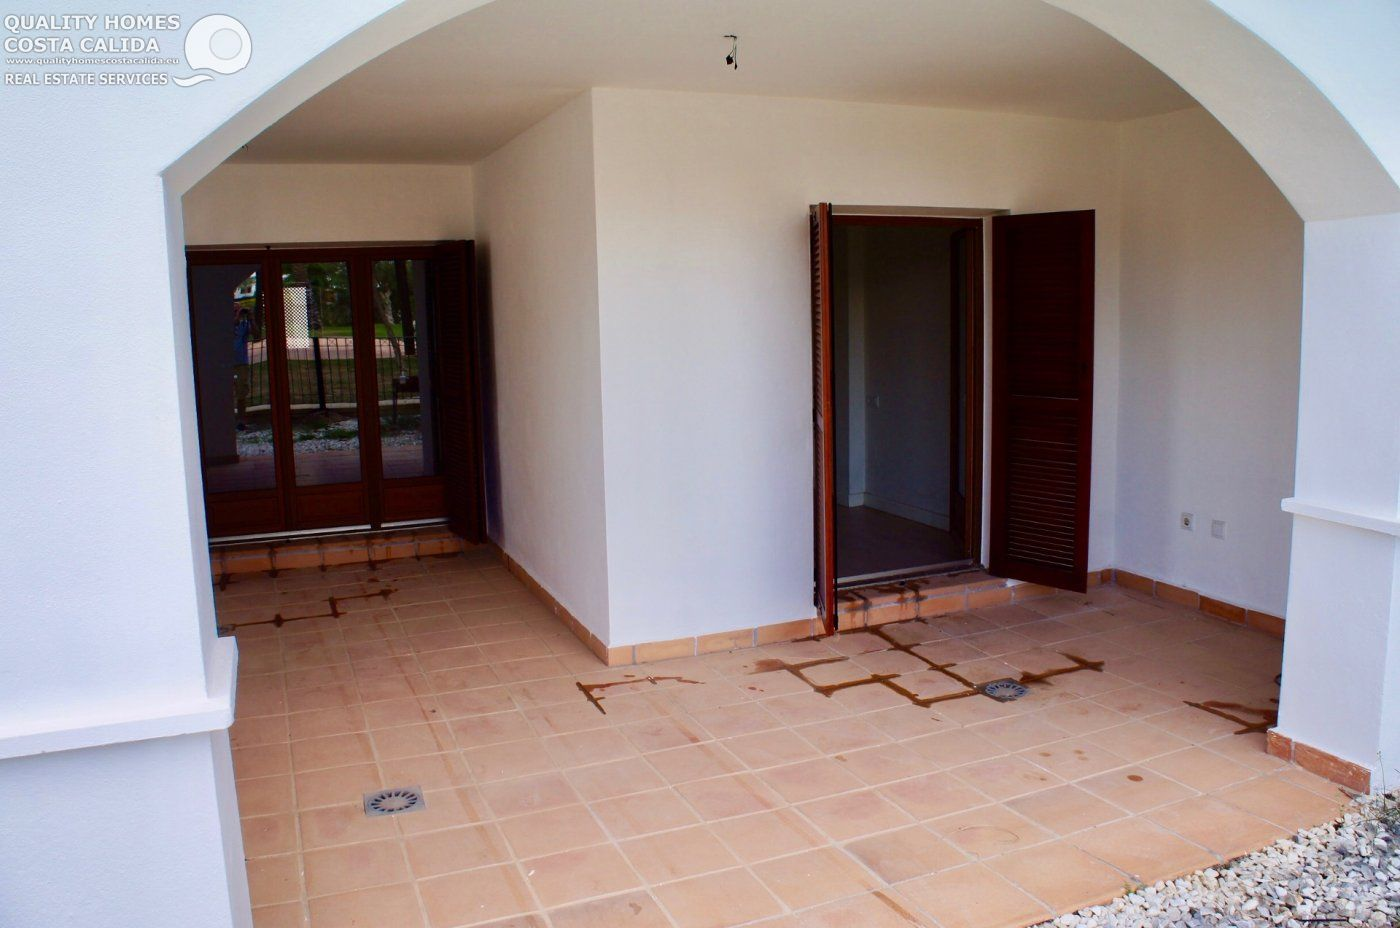 Gallery Image 15 of Garden flat with pool view, 2 bed and 2 bath in lovely Golf Resort